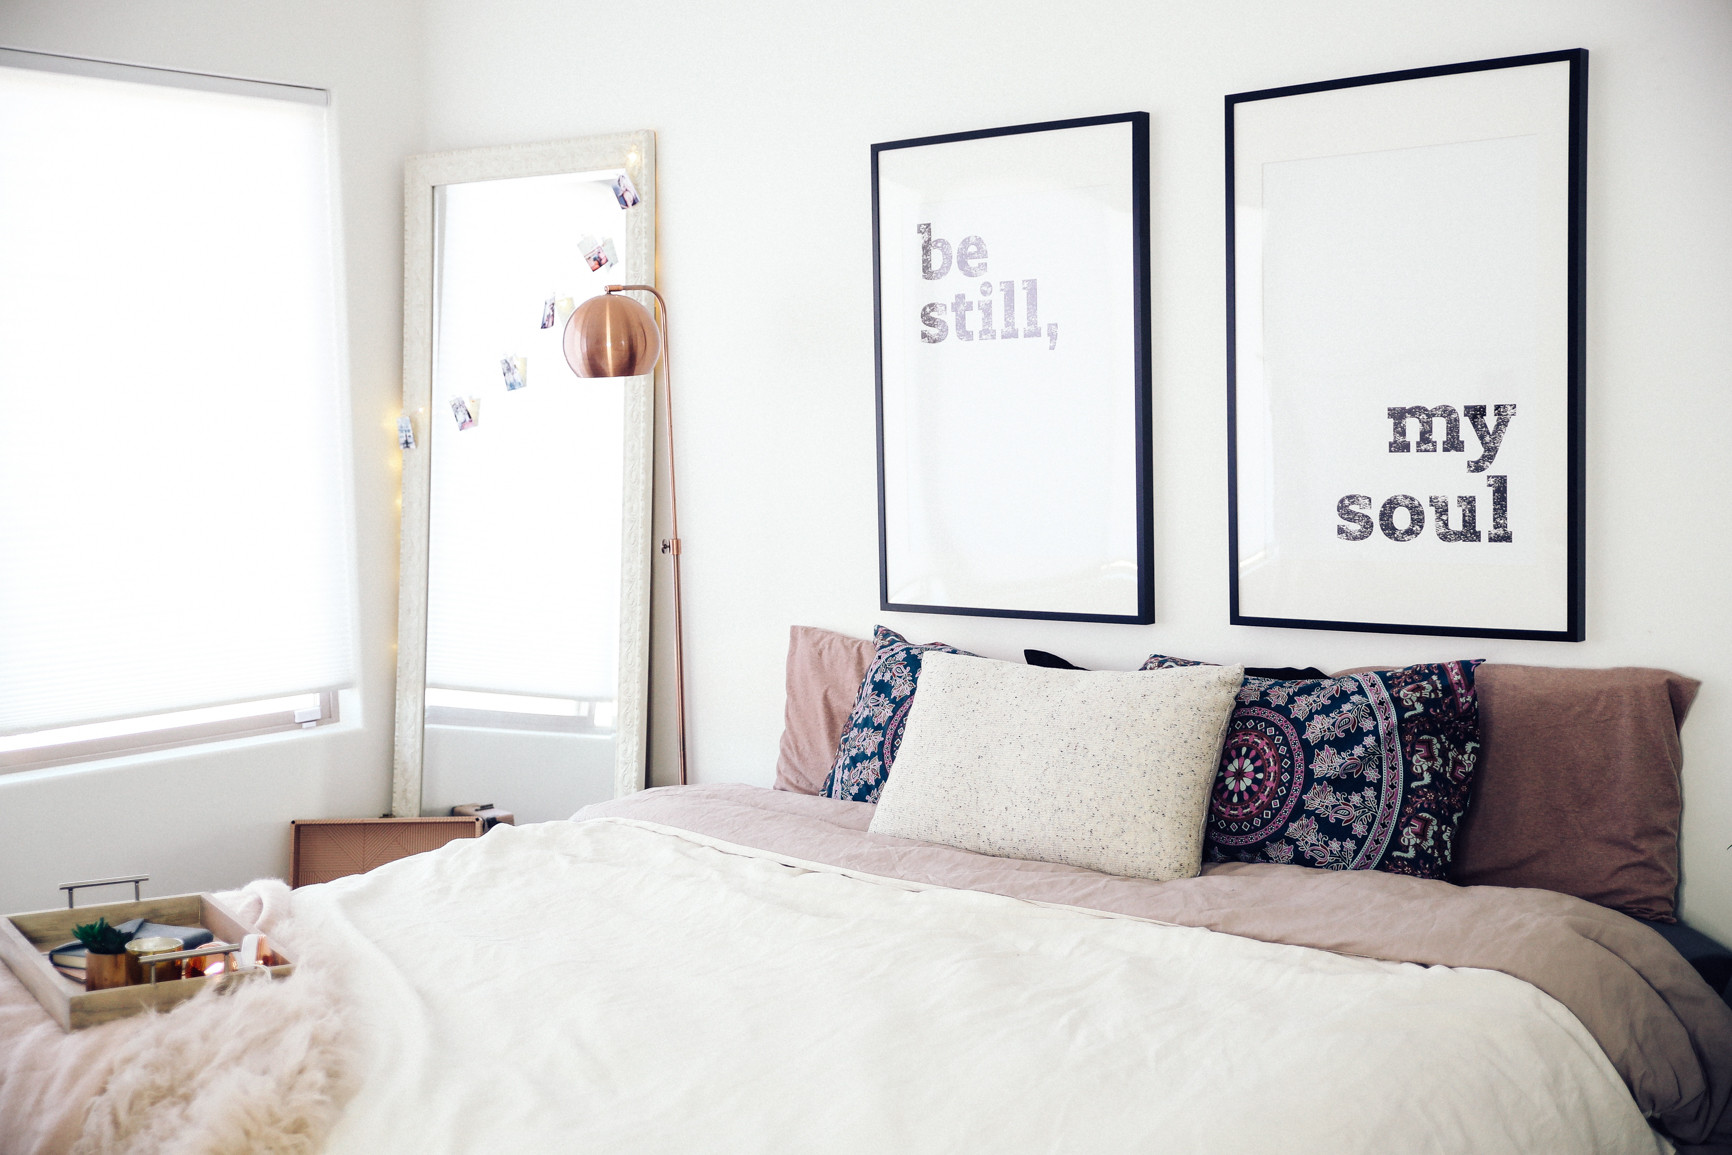 Aspyn ovard lifestyle blogger for Bedroom ideas urban